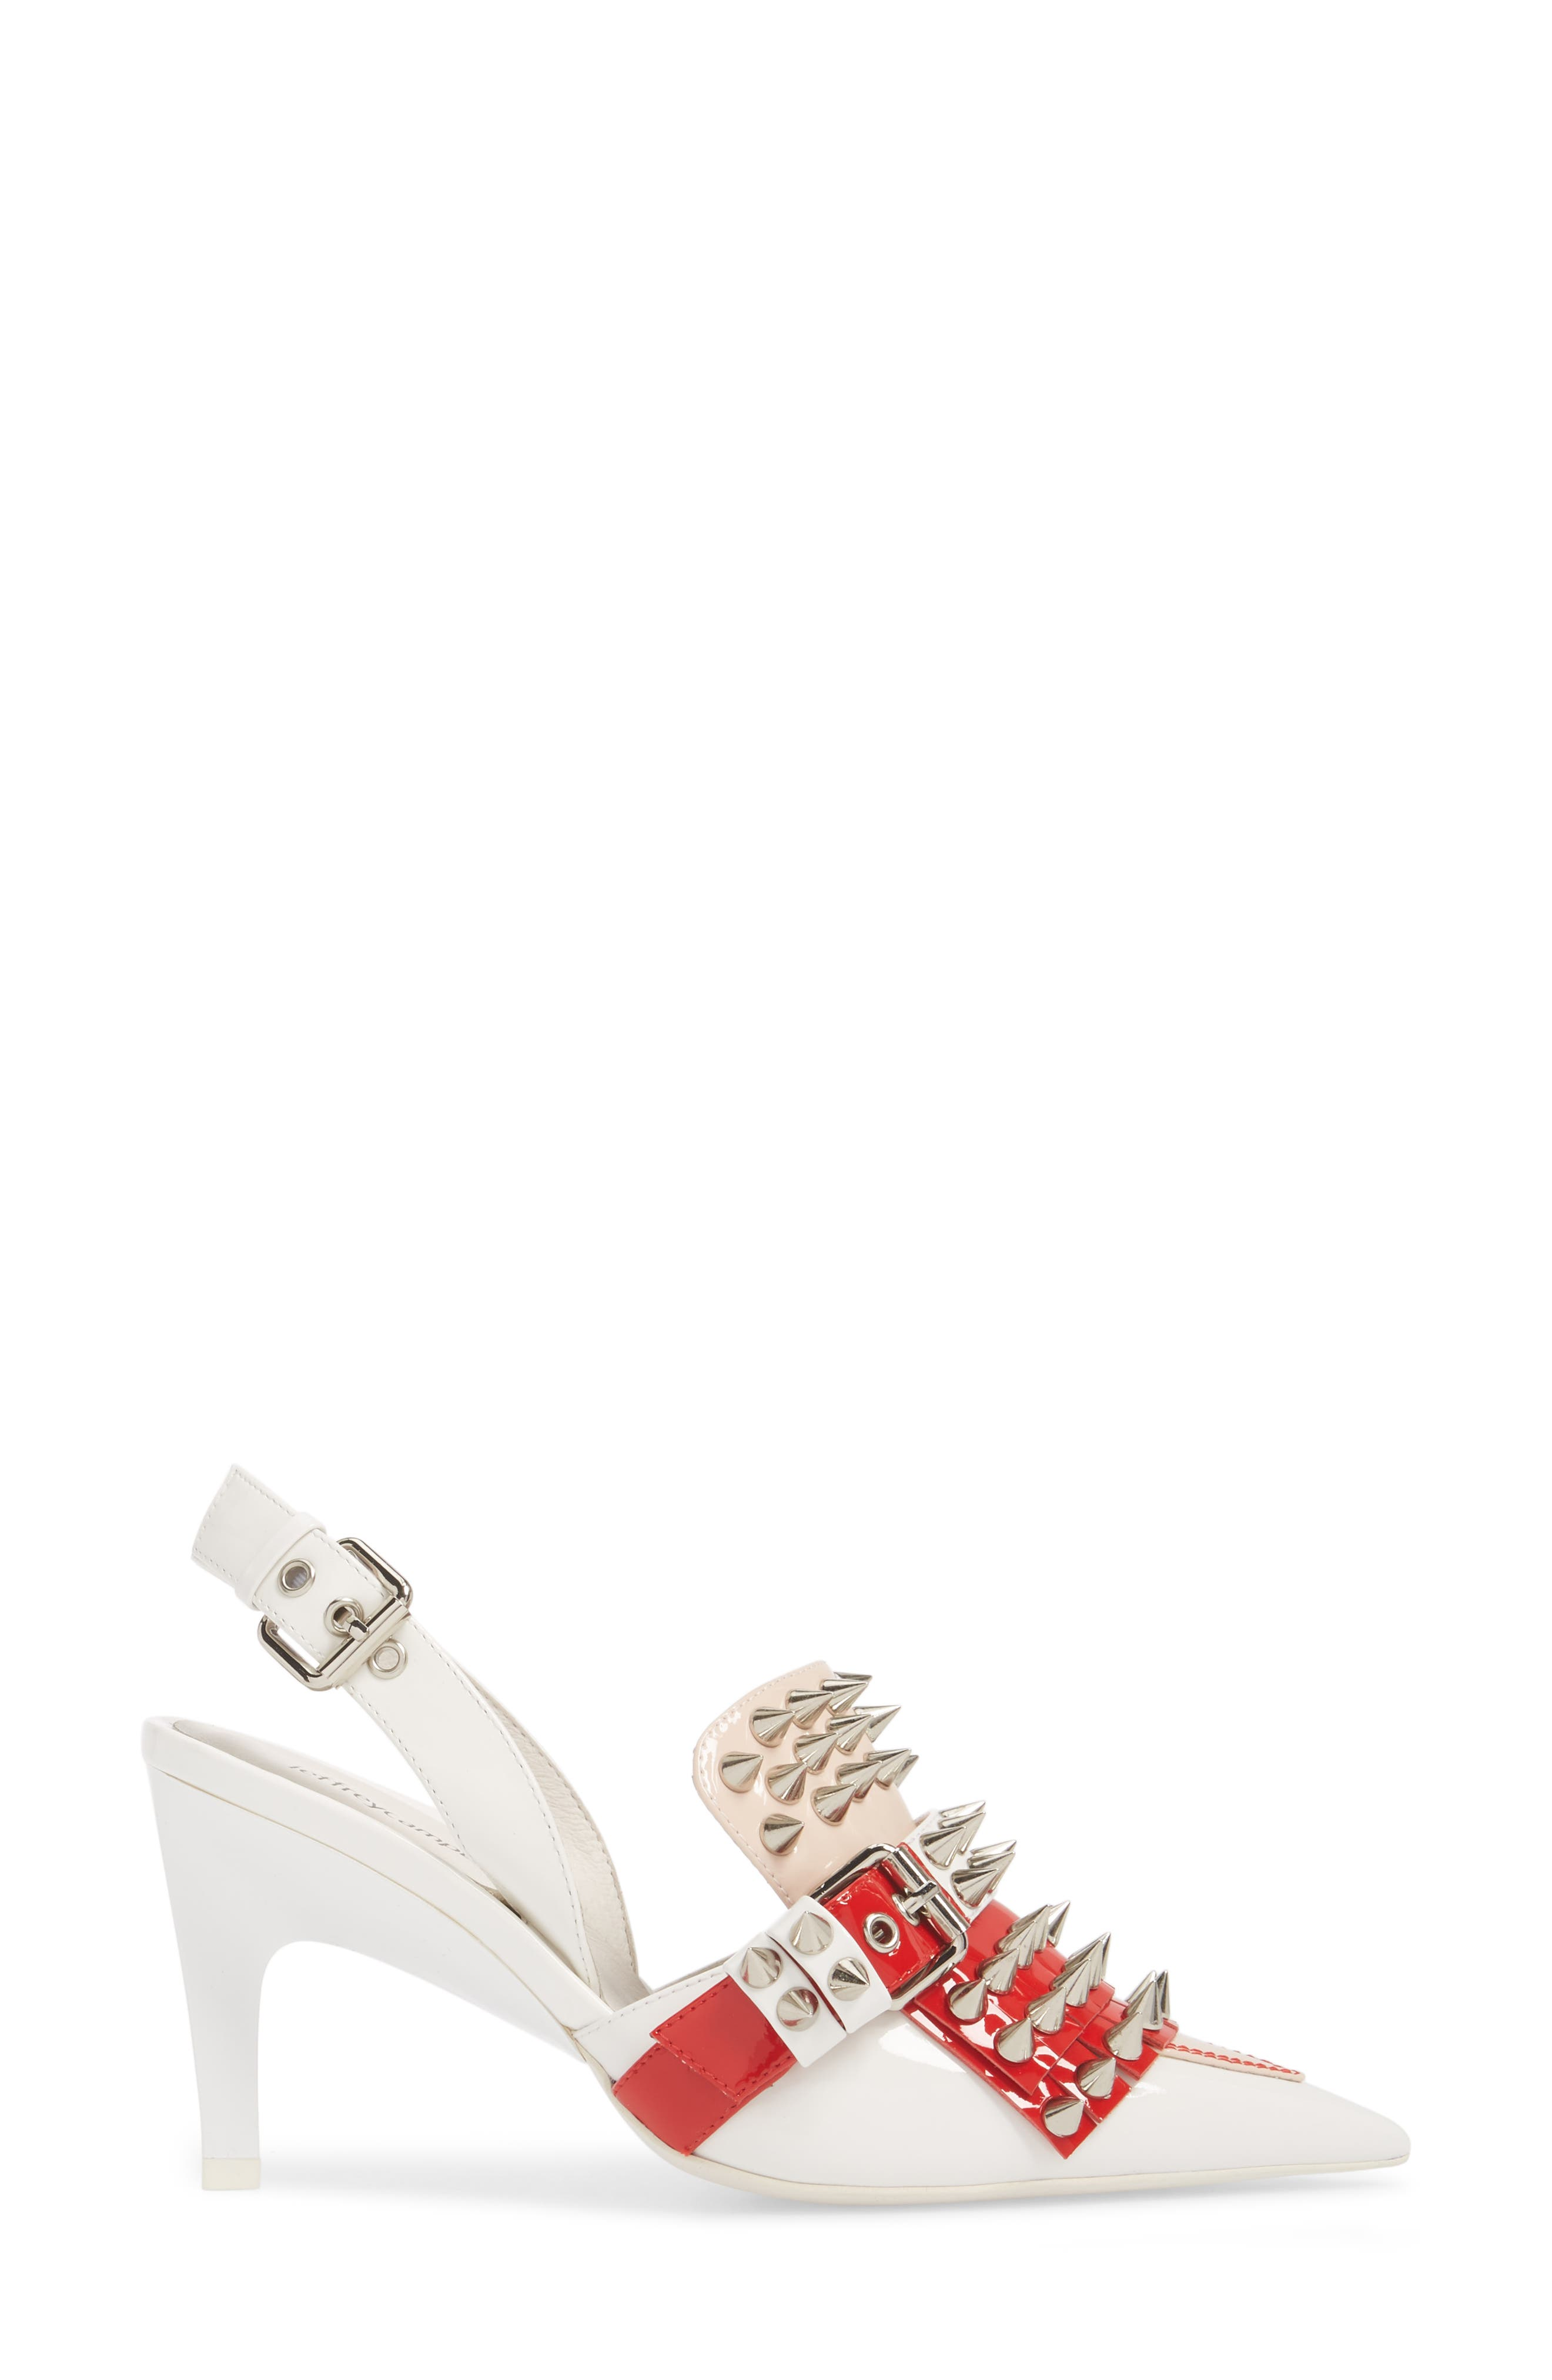 Vicious-2 Studded Loafer Pump,                             Alternate thumbnail 3, color,                             WHITE/ RED/ PINK PATENT/ WHITE